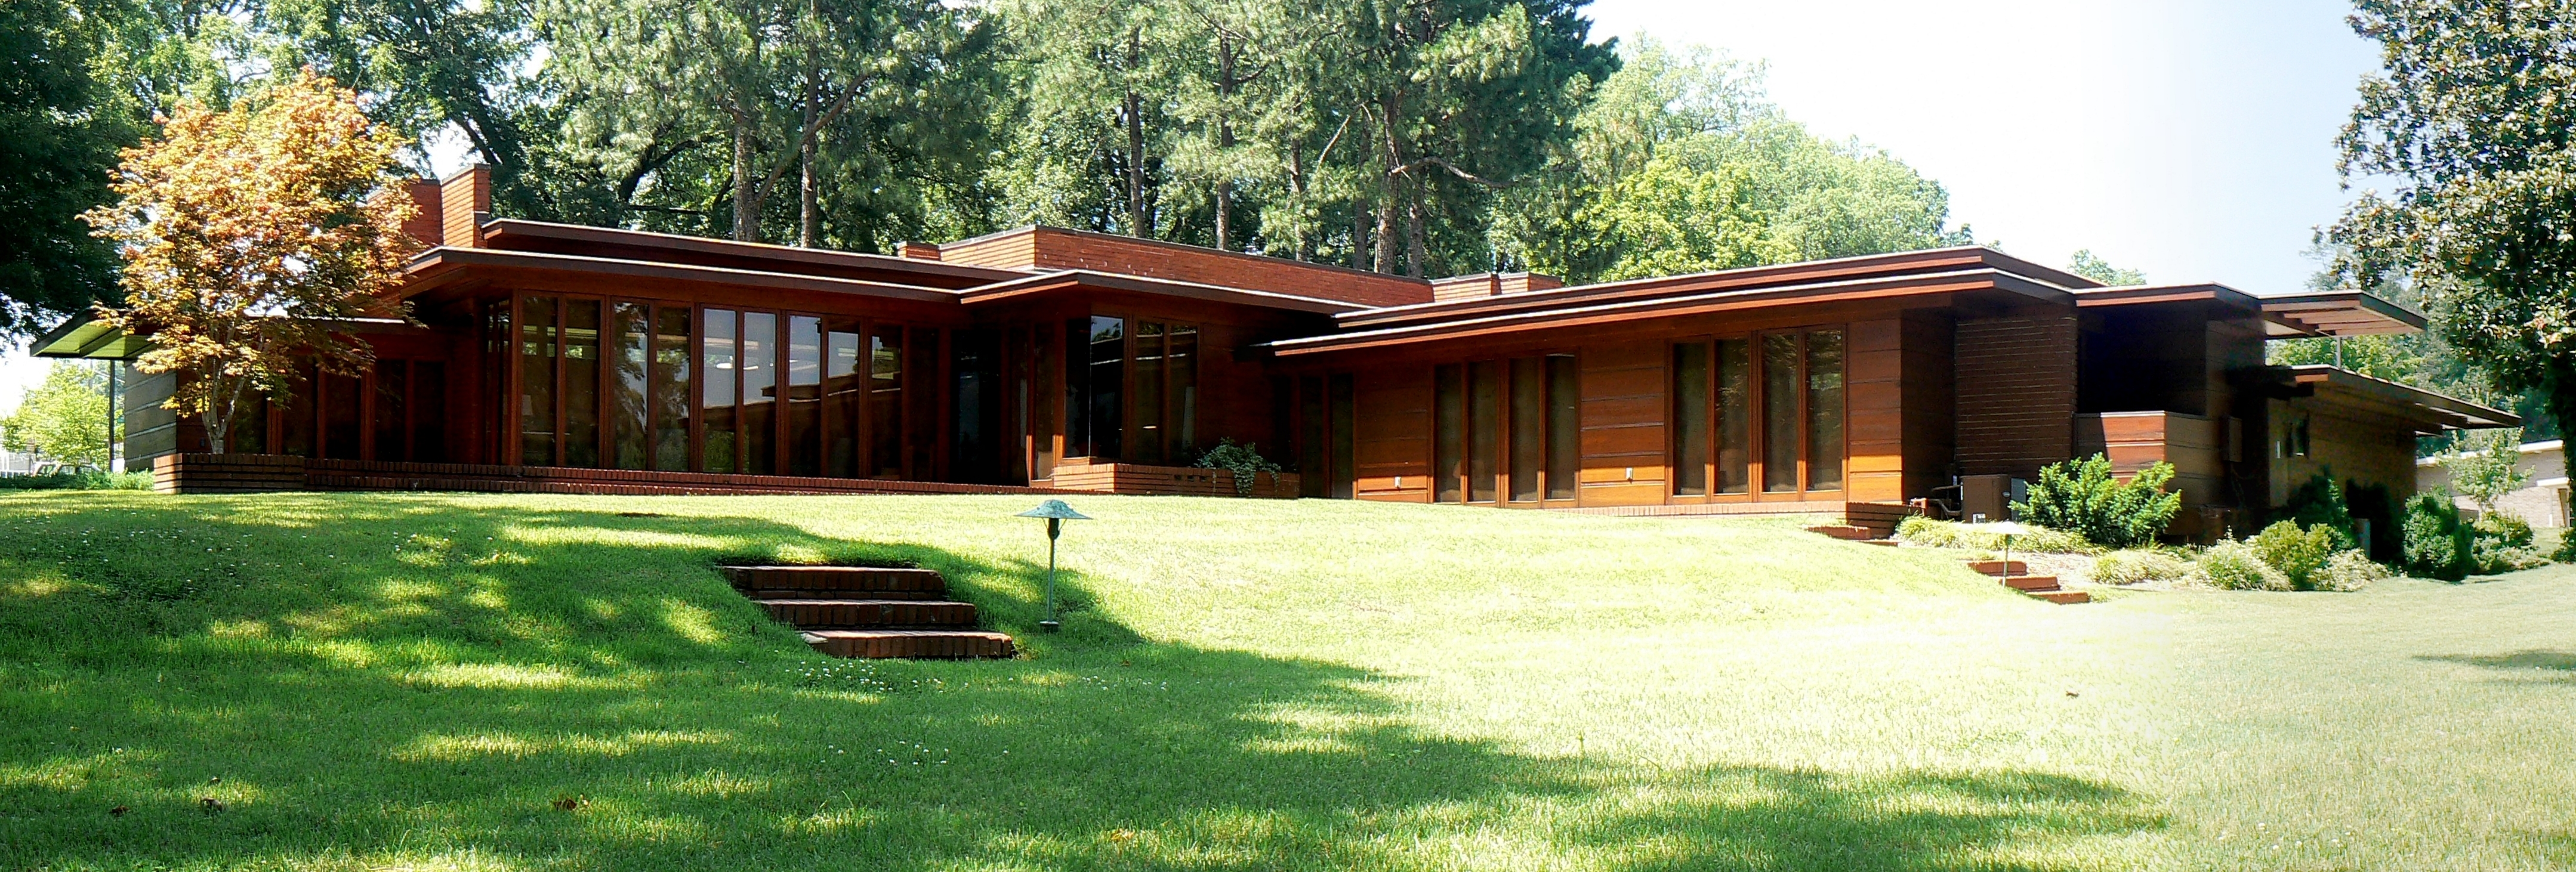 The front exterior of a usonian ranch house with floor to ceiling windows surrounded by trees and grass.